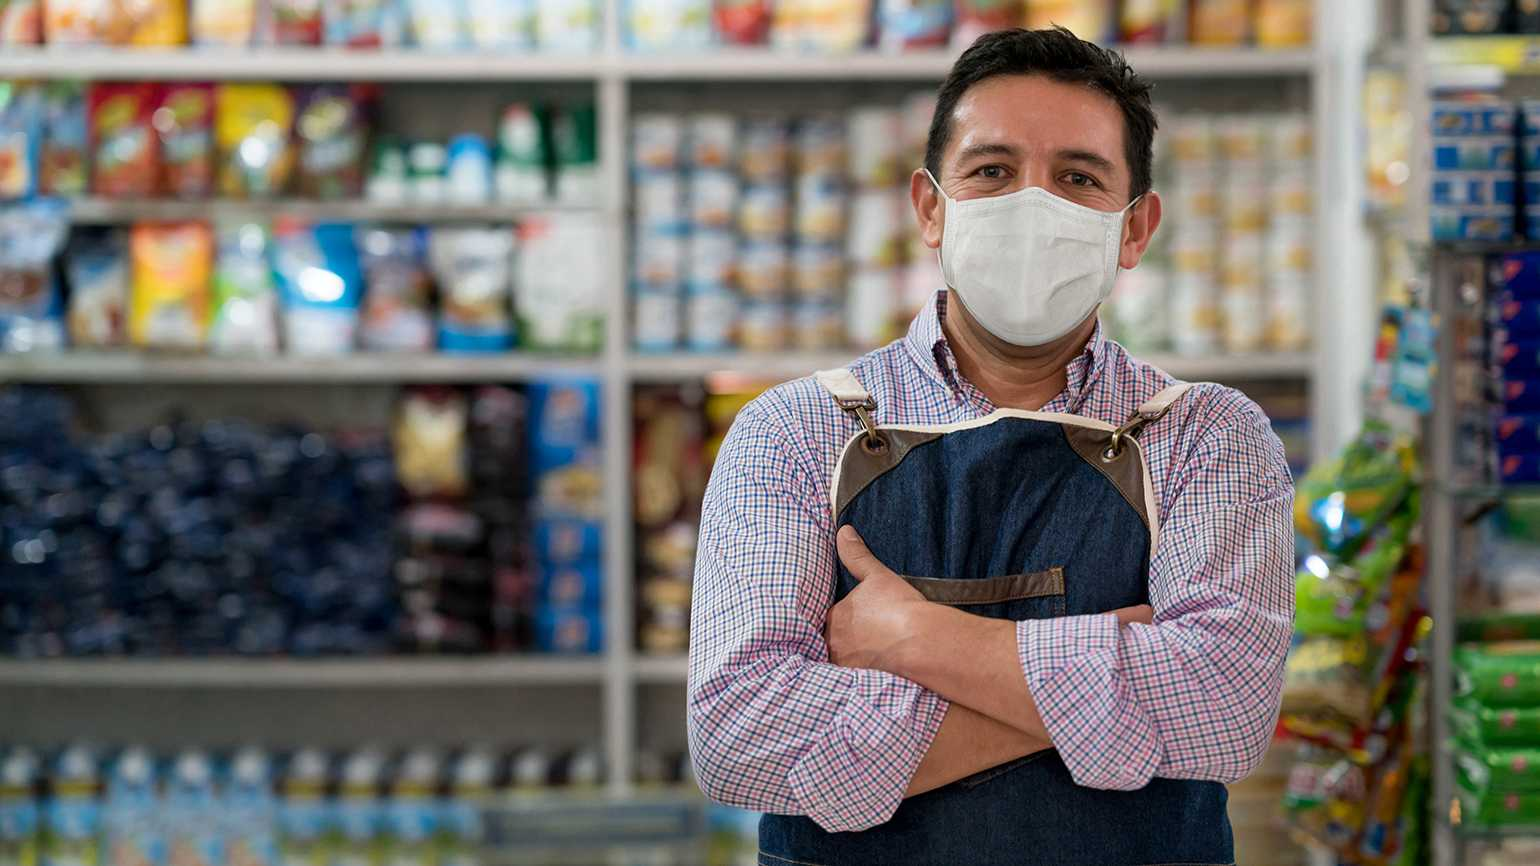 A grocery clerk with a Covid-19 mask